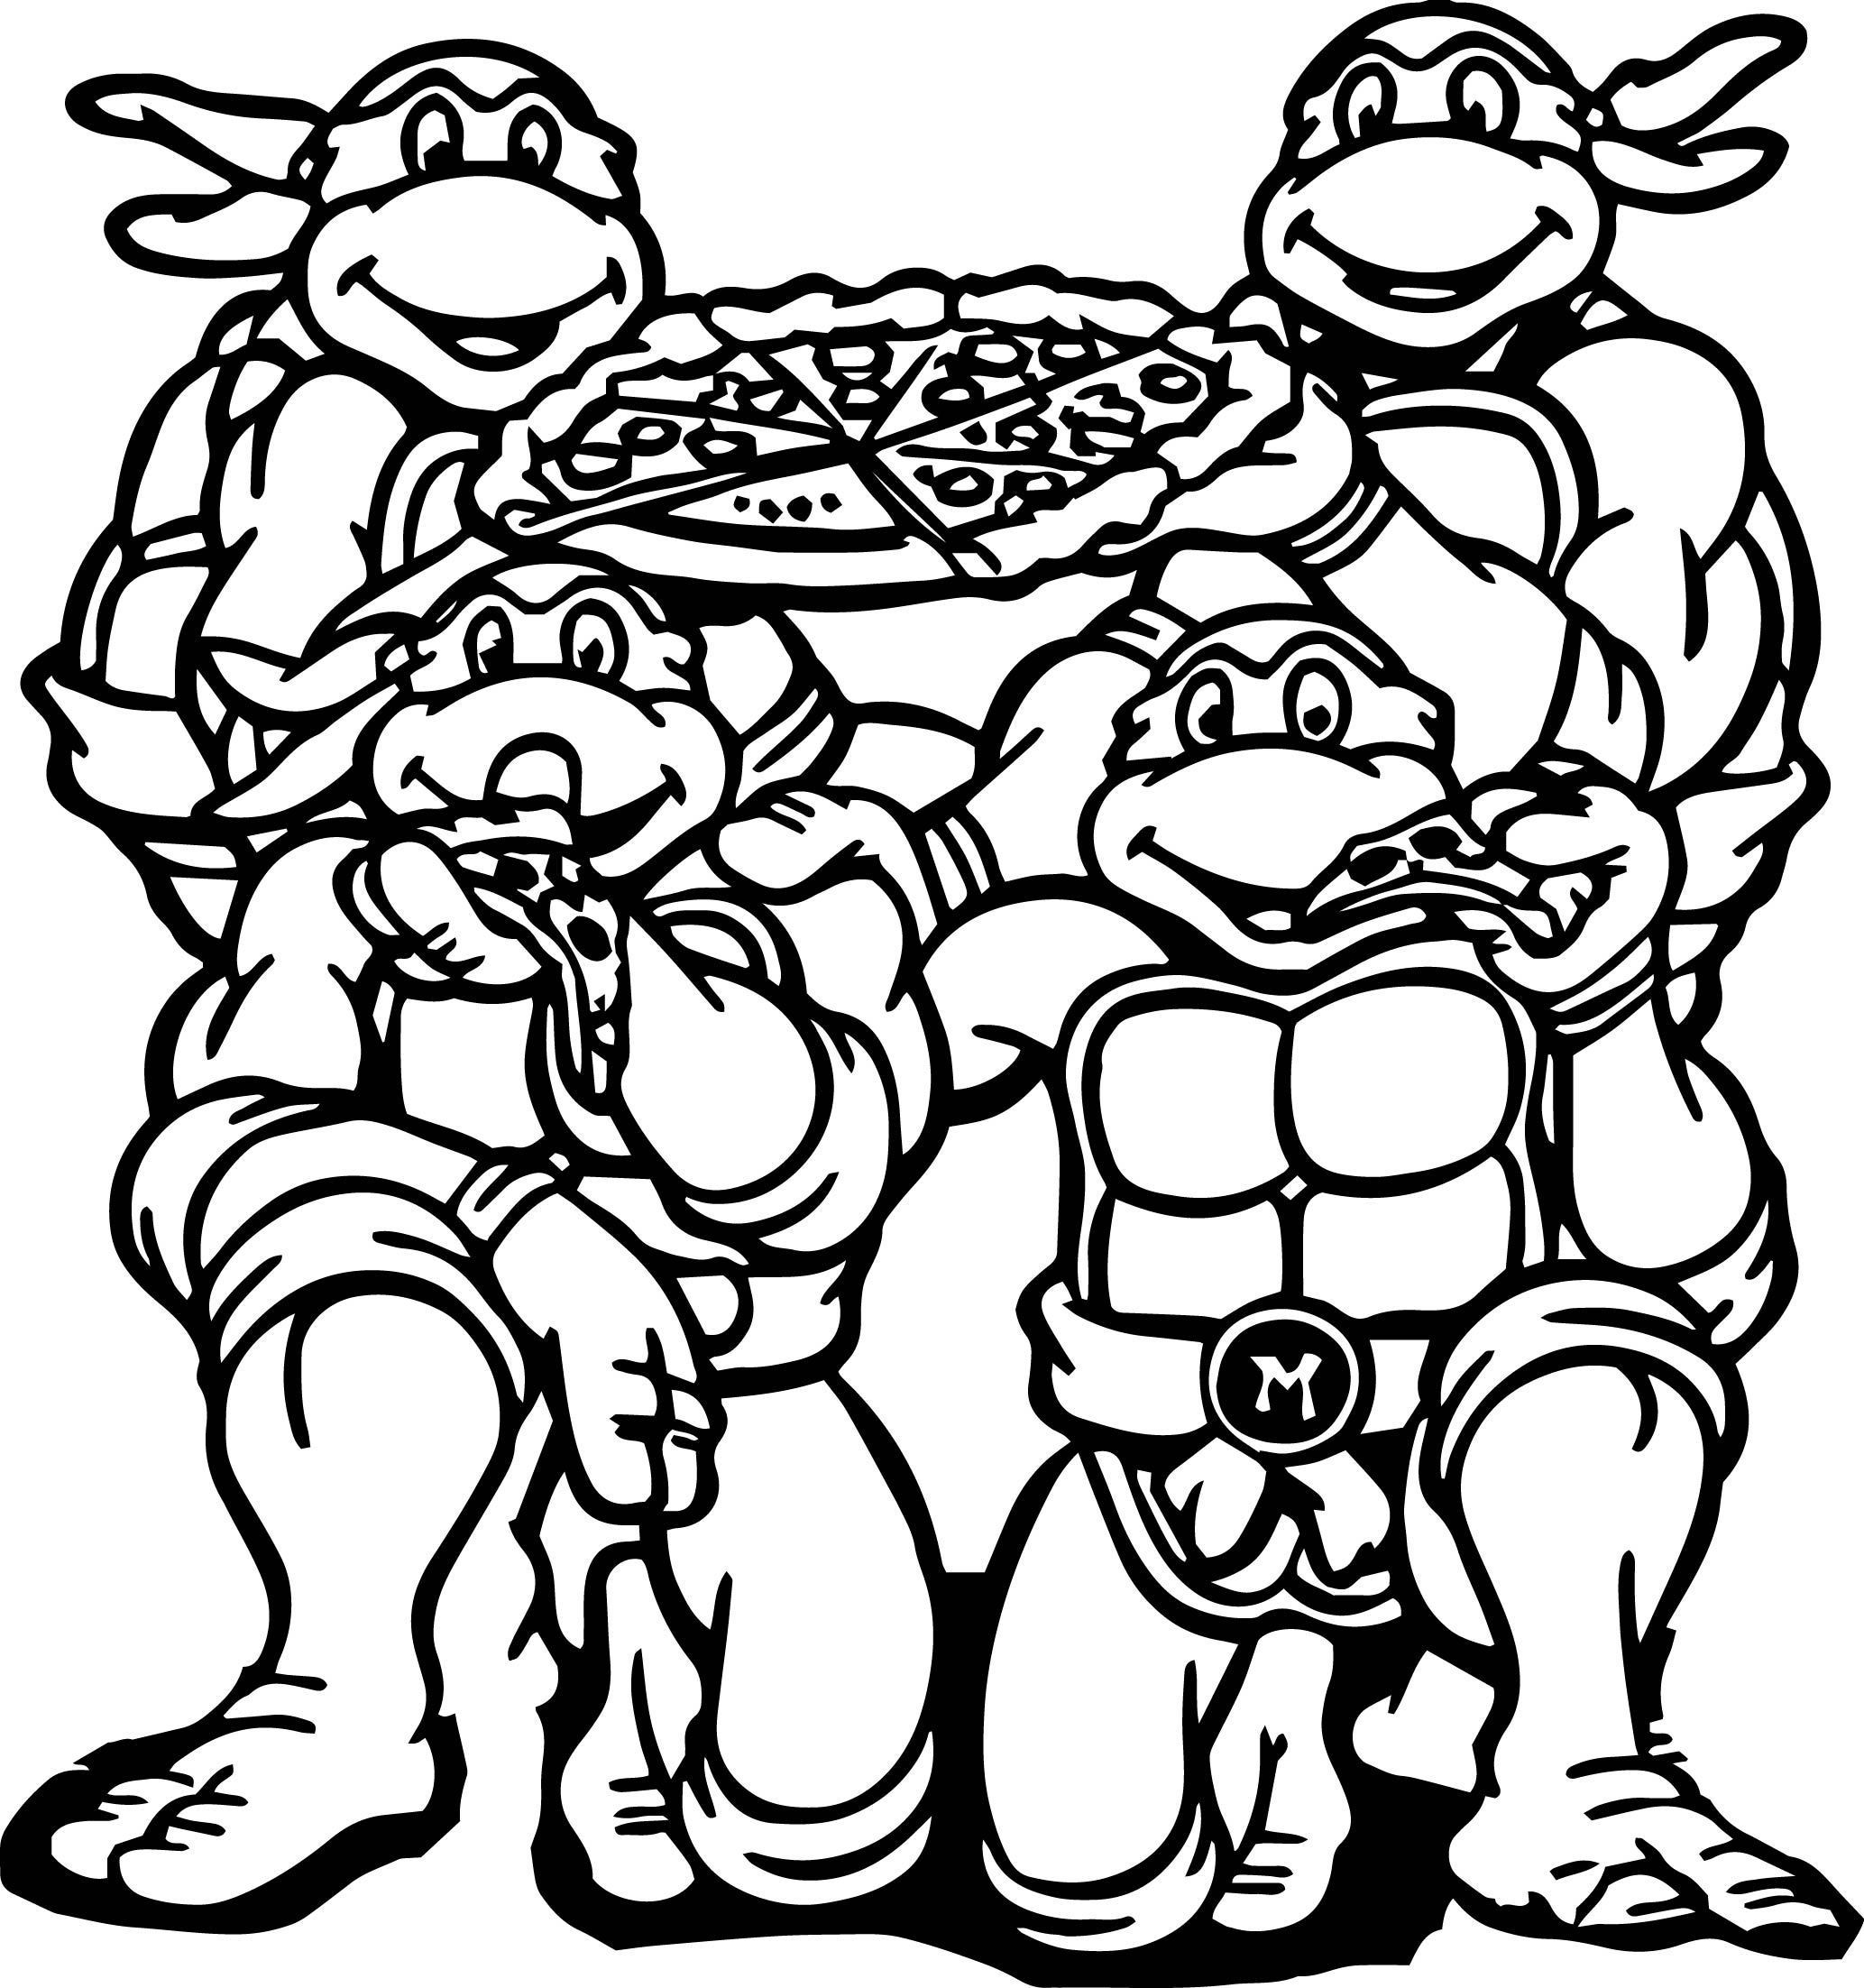 pictures of ninja turtles to color ninja turtle coloring pages pdf at getcoloringscom free turtles color pictures of to ninja